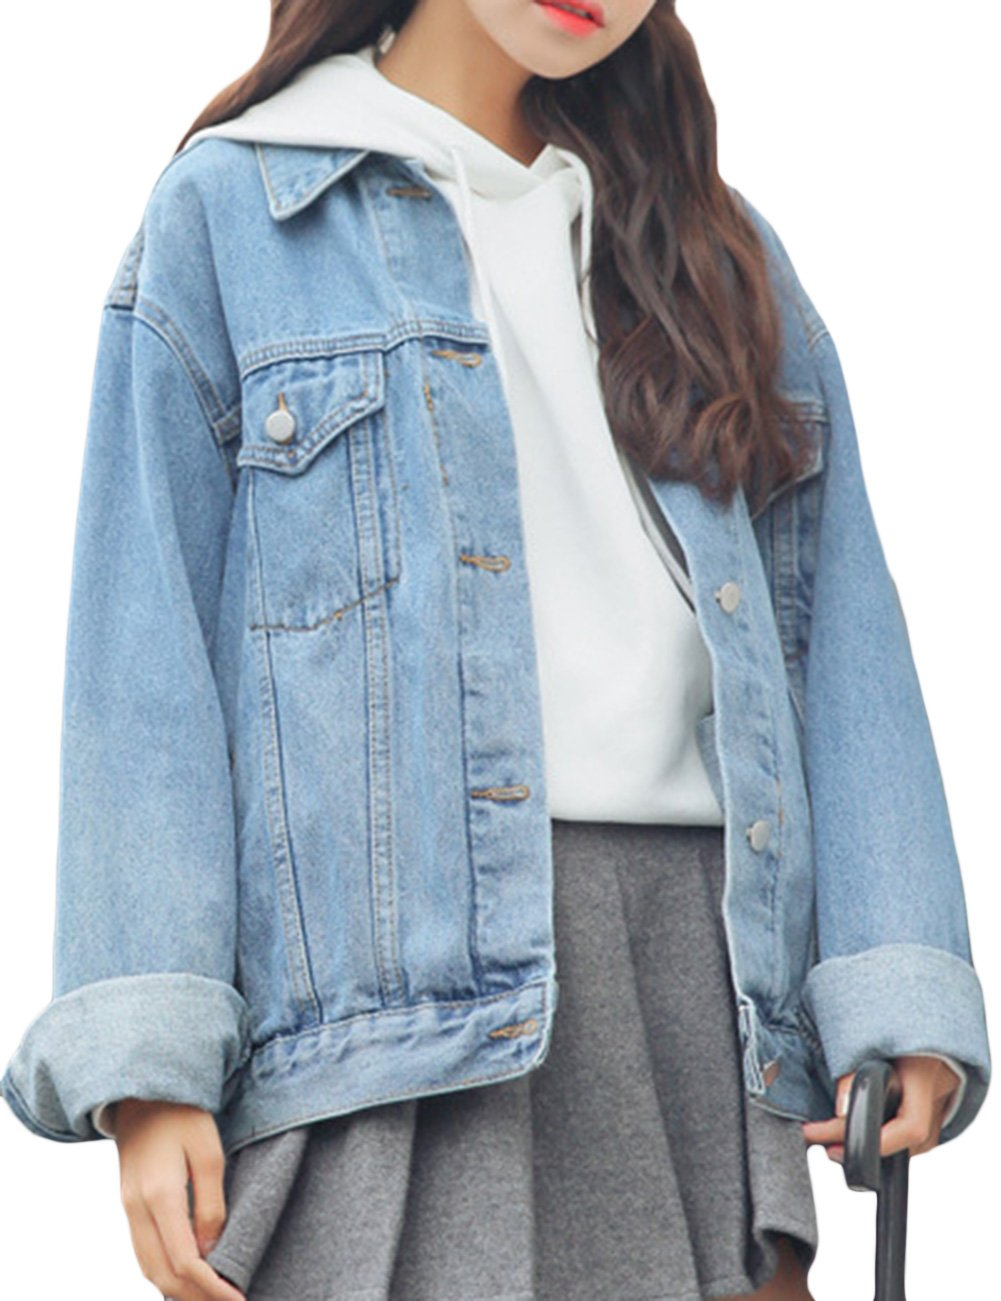 sandbank Women's Loose Fit Long Sleeve Button Boyfriend Denim Jacket Jean Coat (L, Light Blue)